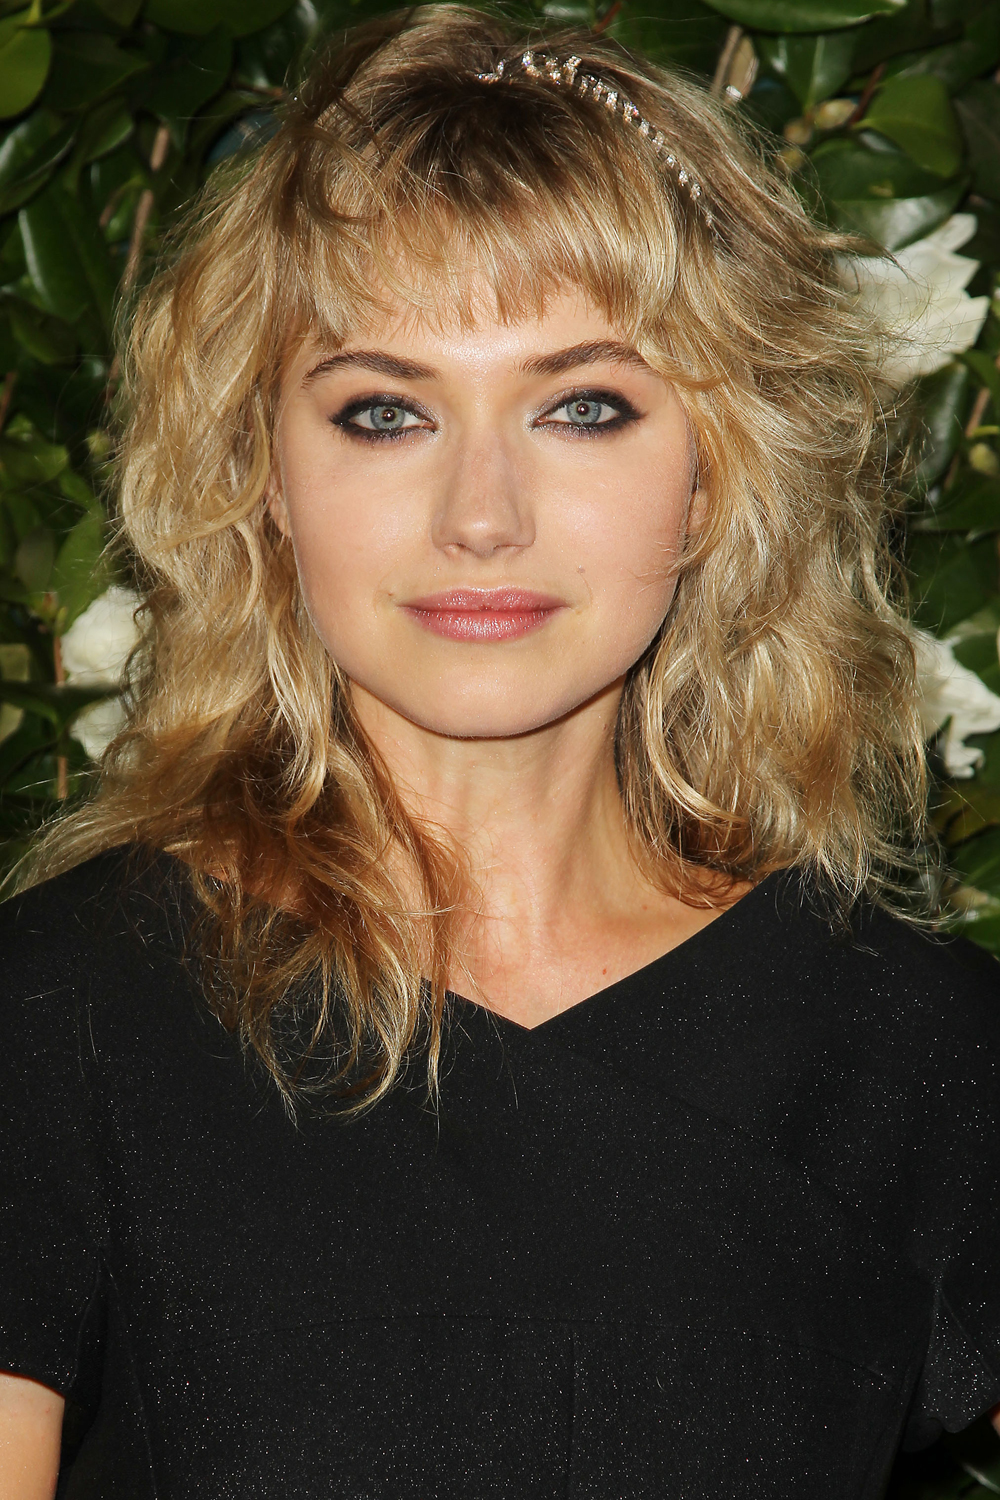 Swell Hairstyles For Round Faces The Best Celebrity Styles To Inspire You Short Hairstyles Gunalazisus